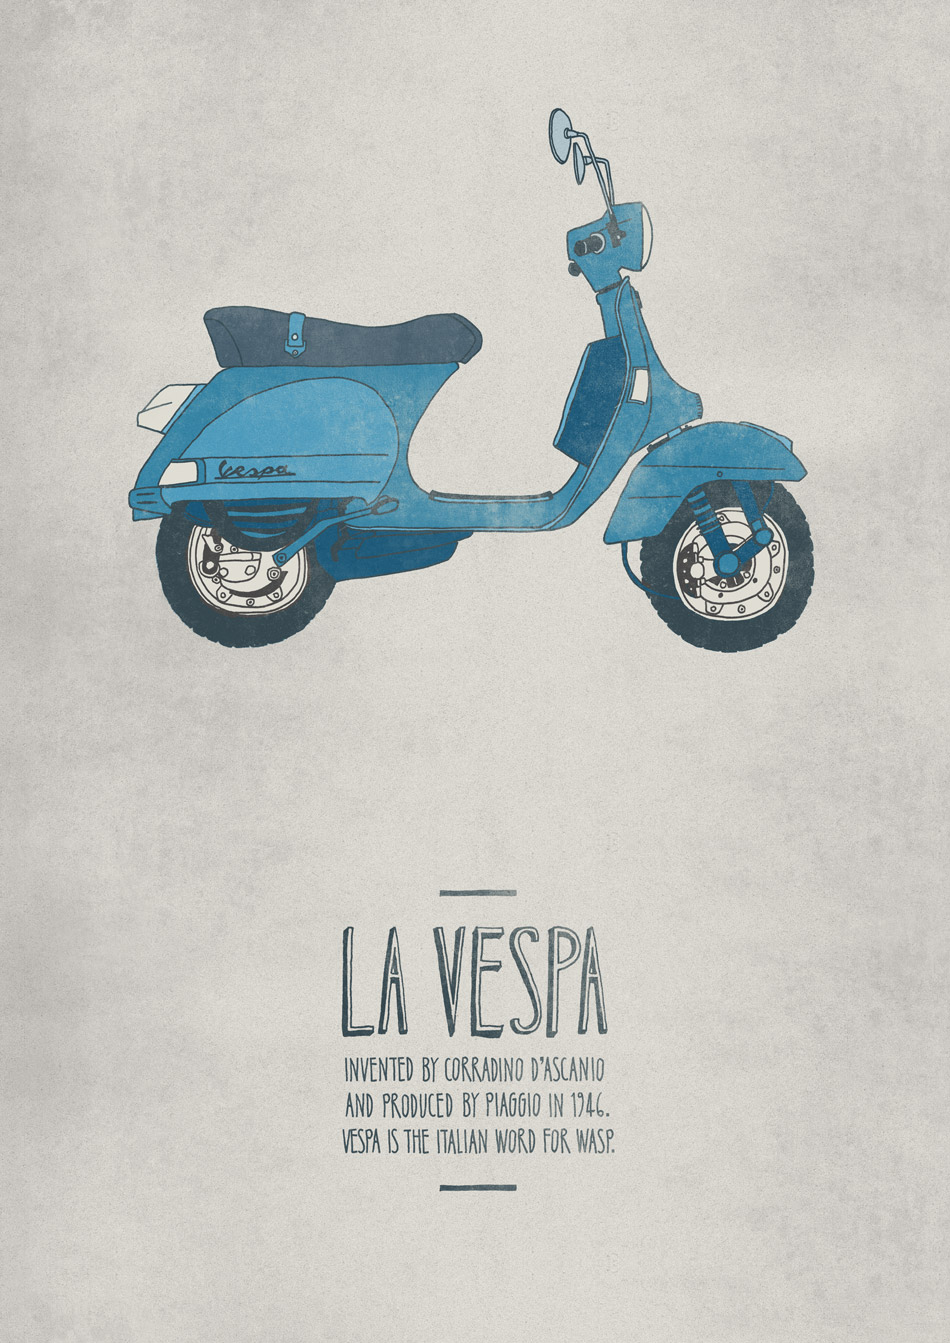 Vespa_FINAL_hirestoprint_A4.jpg